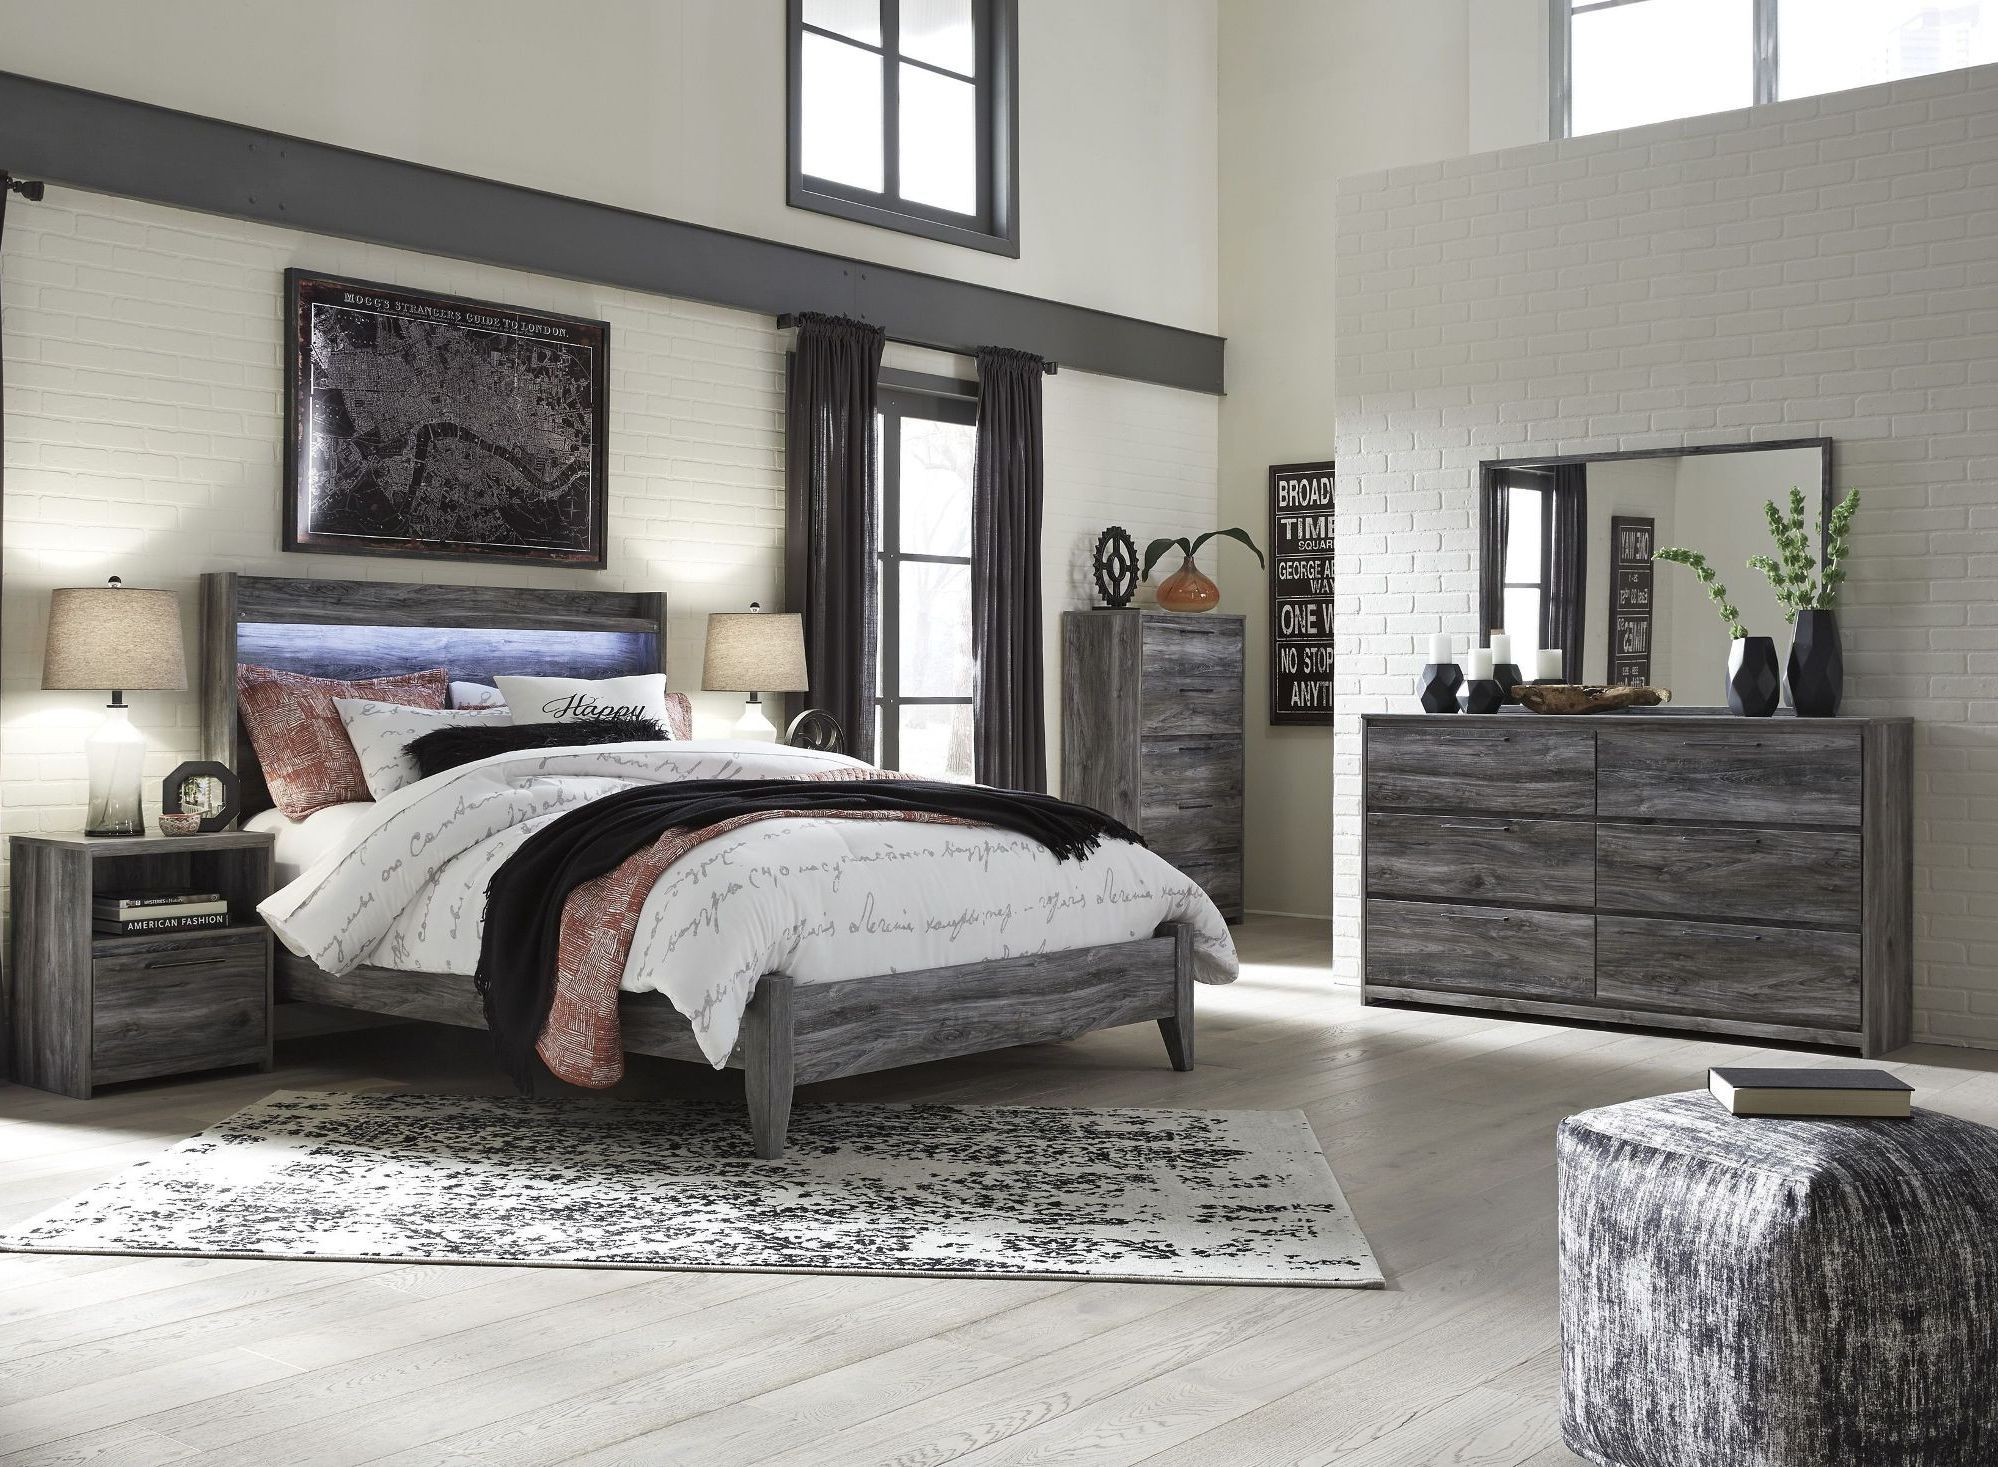 Baystorm gray panel bedroom set 1stopbedrooms - Bedroom furniture sets buy now pay later ...